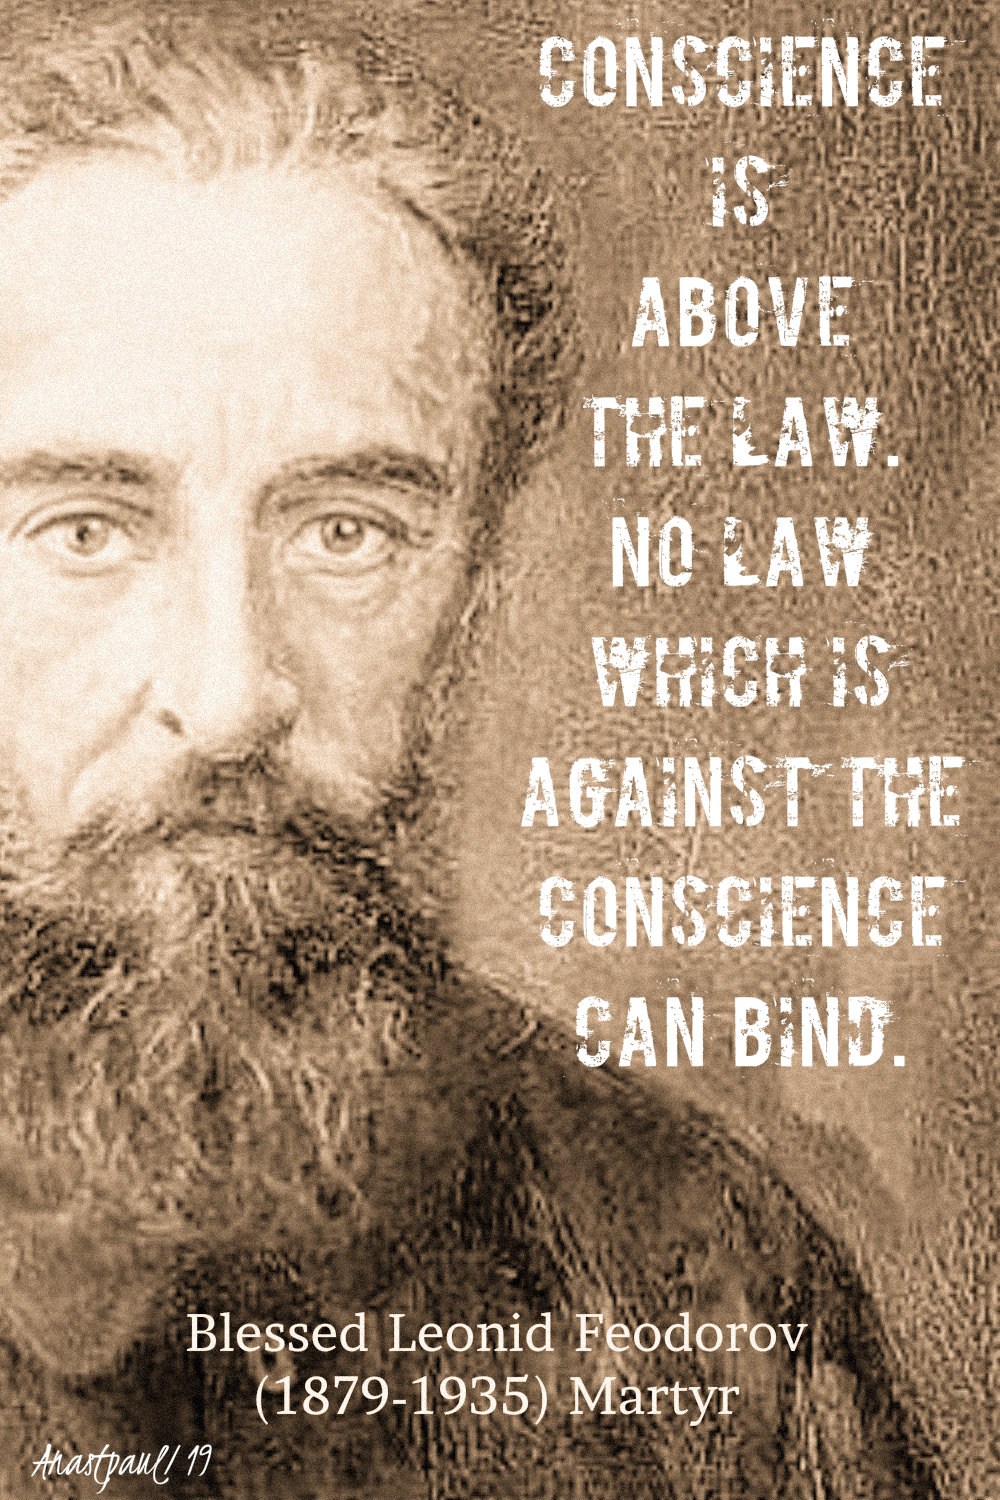 conscience is above the law - bl leonid feodorov 7 march 2019.jpg